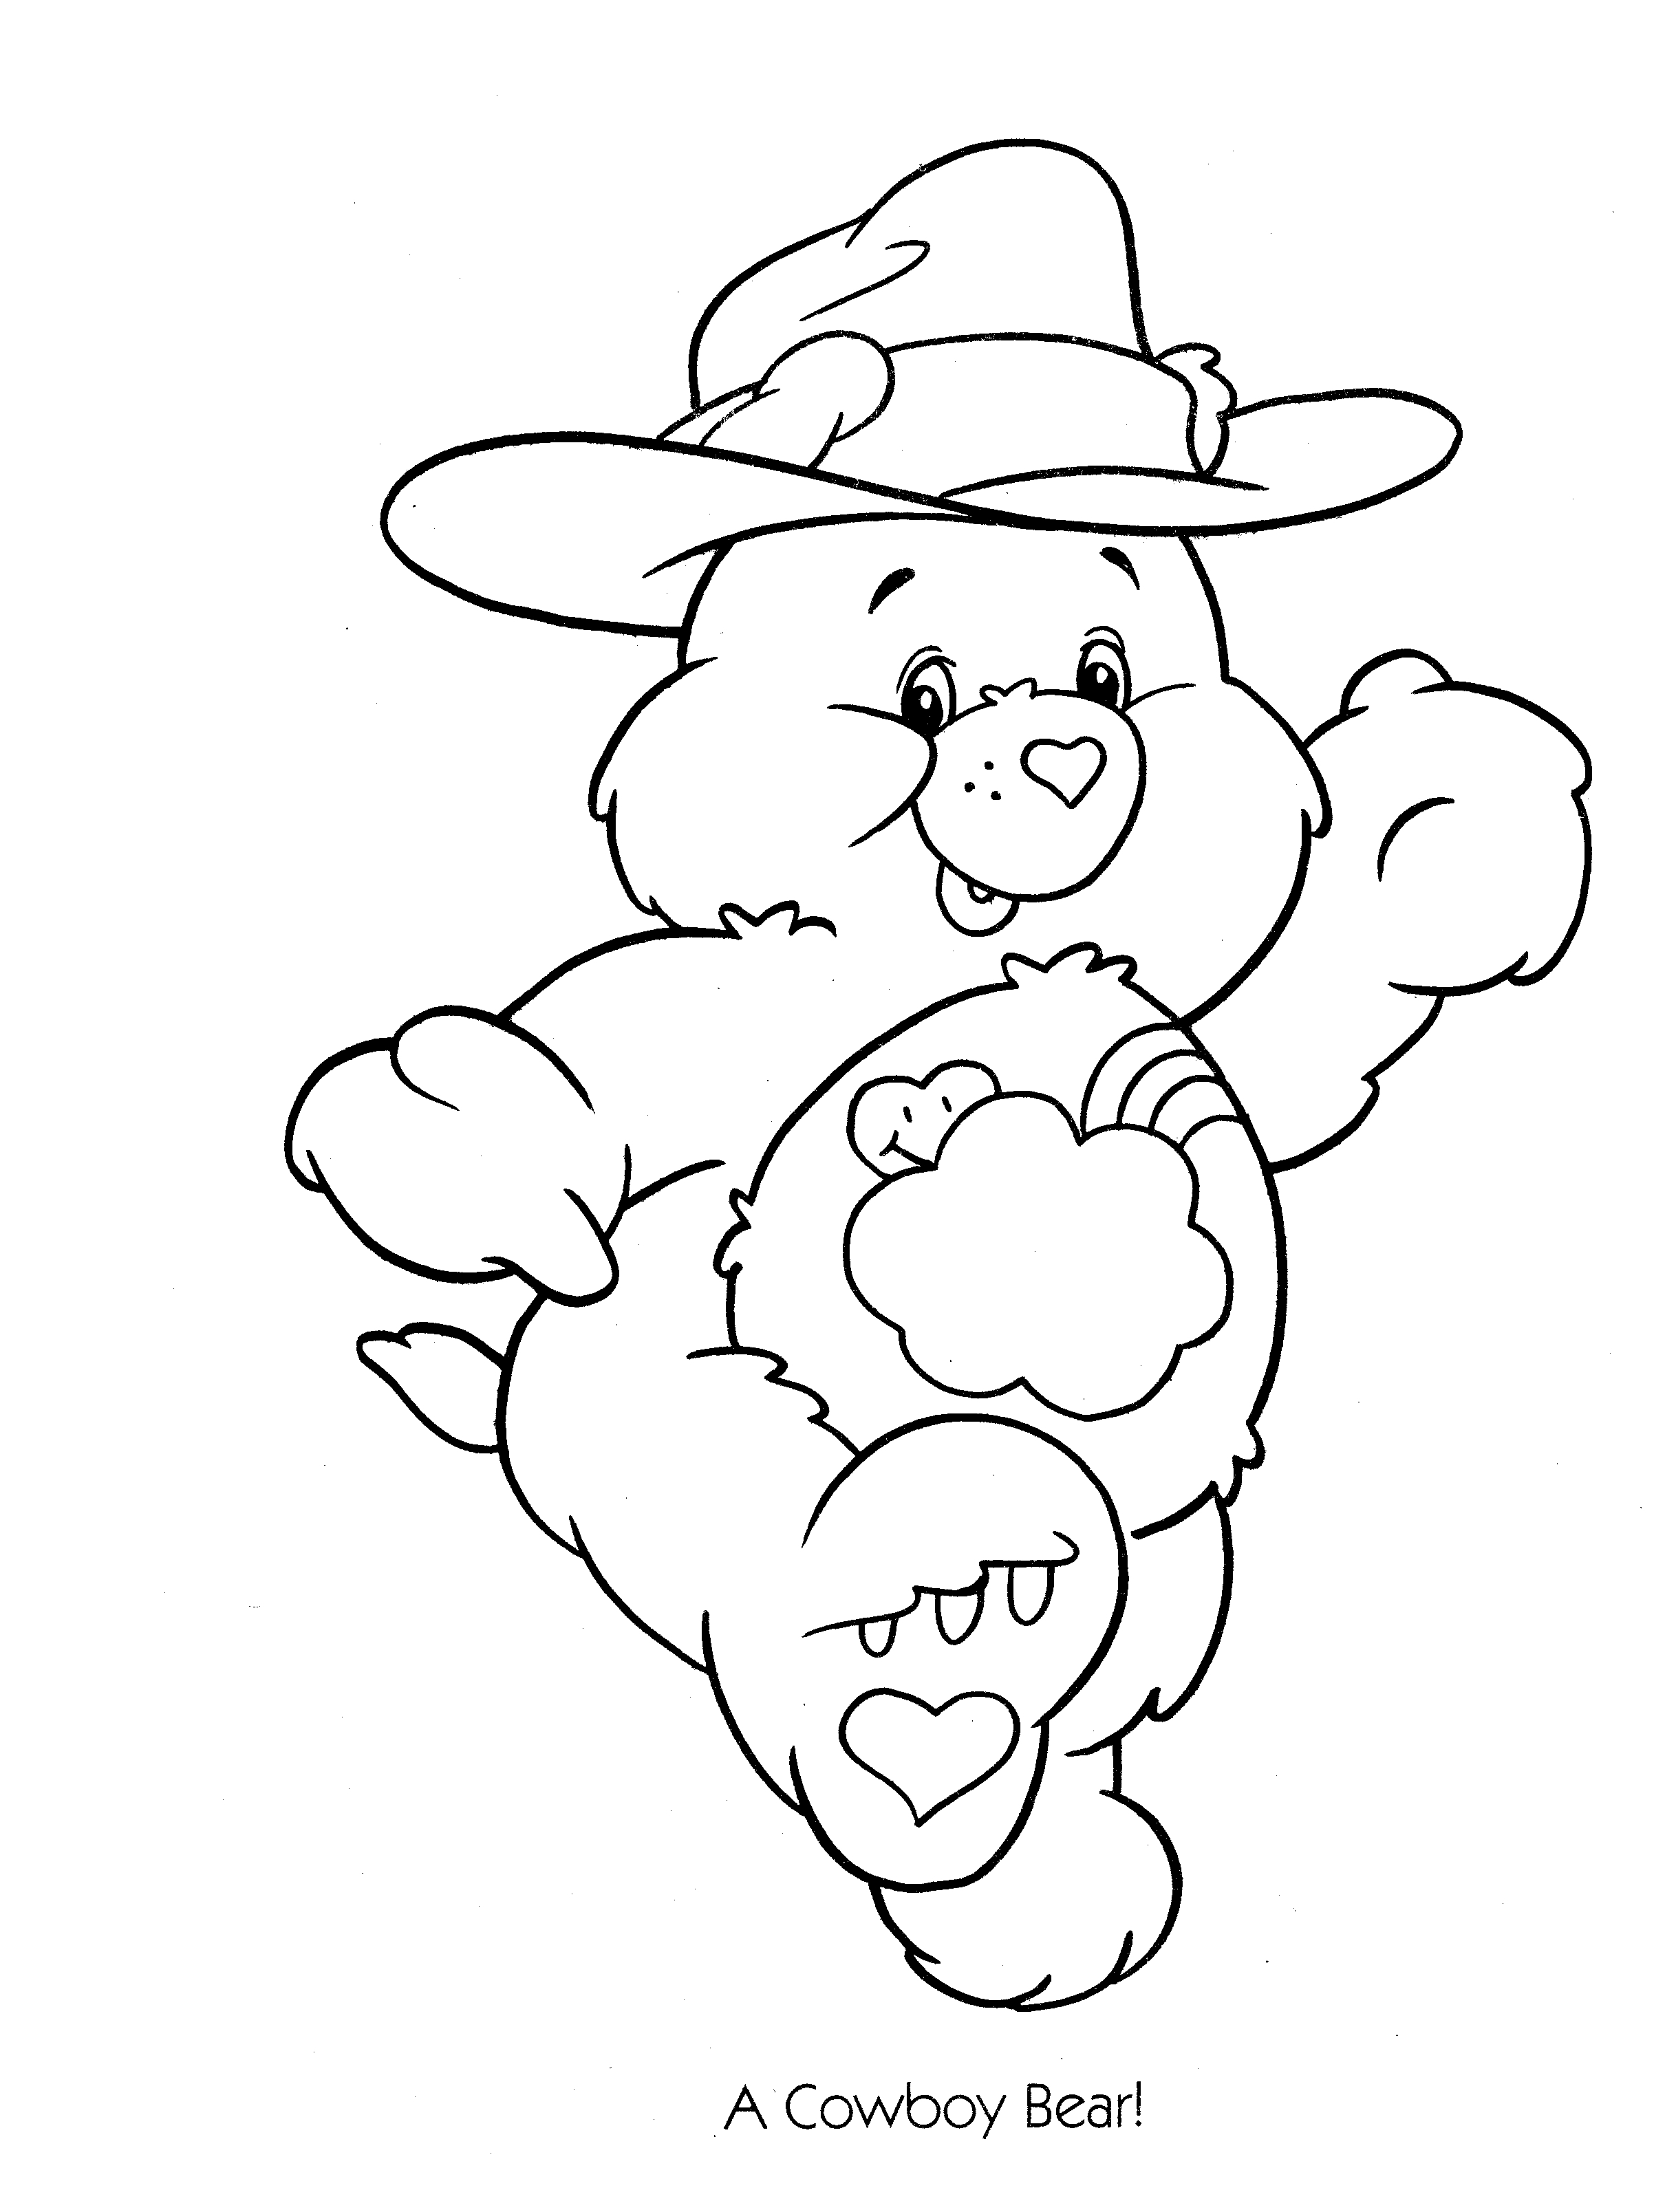 hugs and kisses coloring pages - photo#19